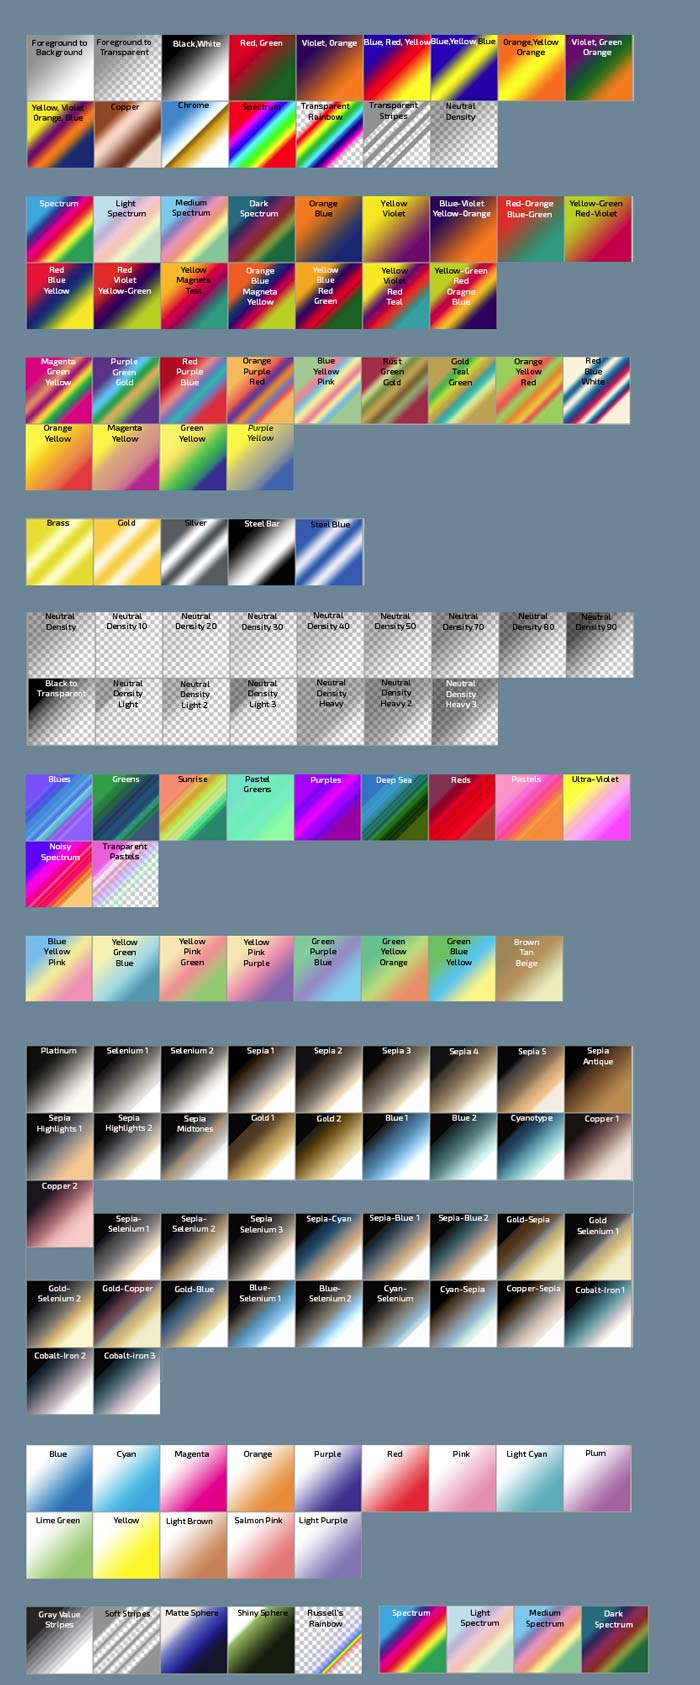 Photoshop Gradients Chart showing all default gradients libraries and which library each gradient belongs to